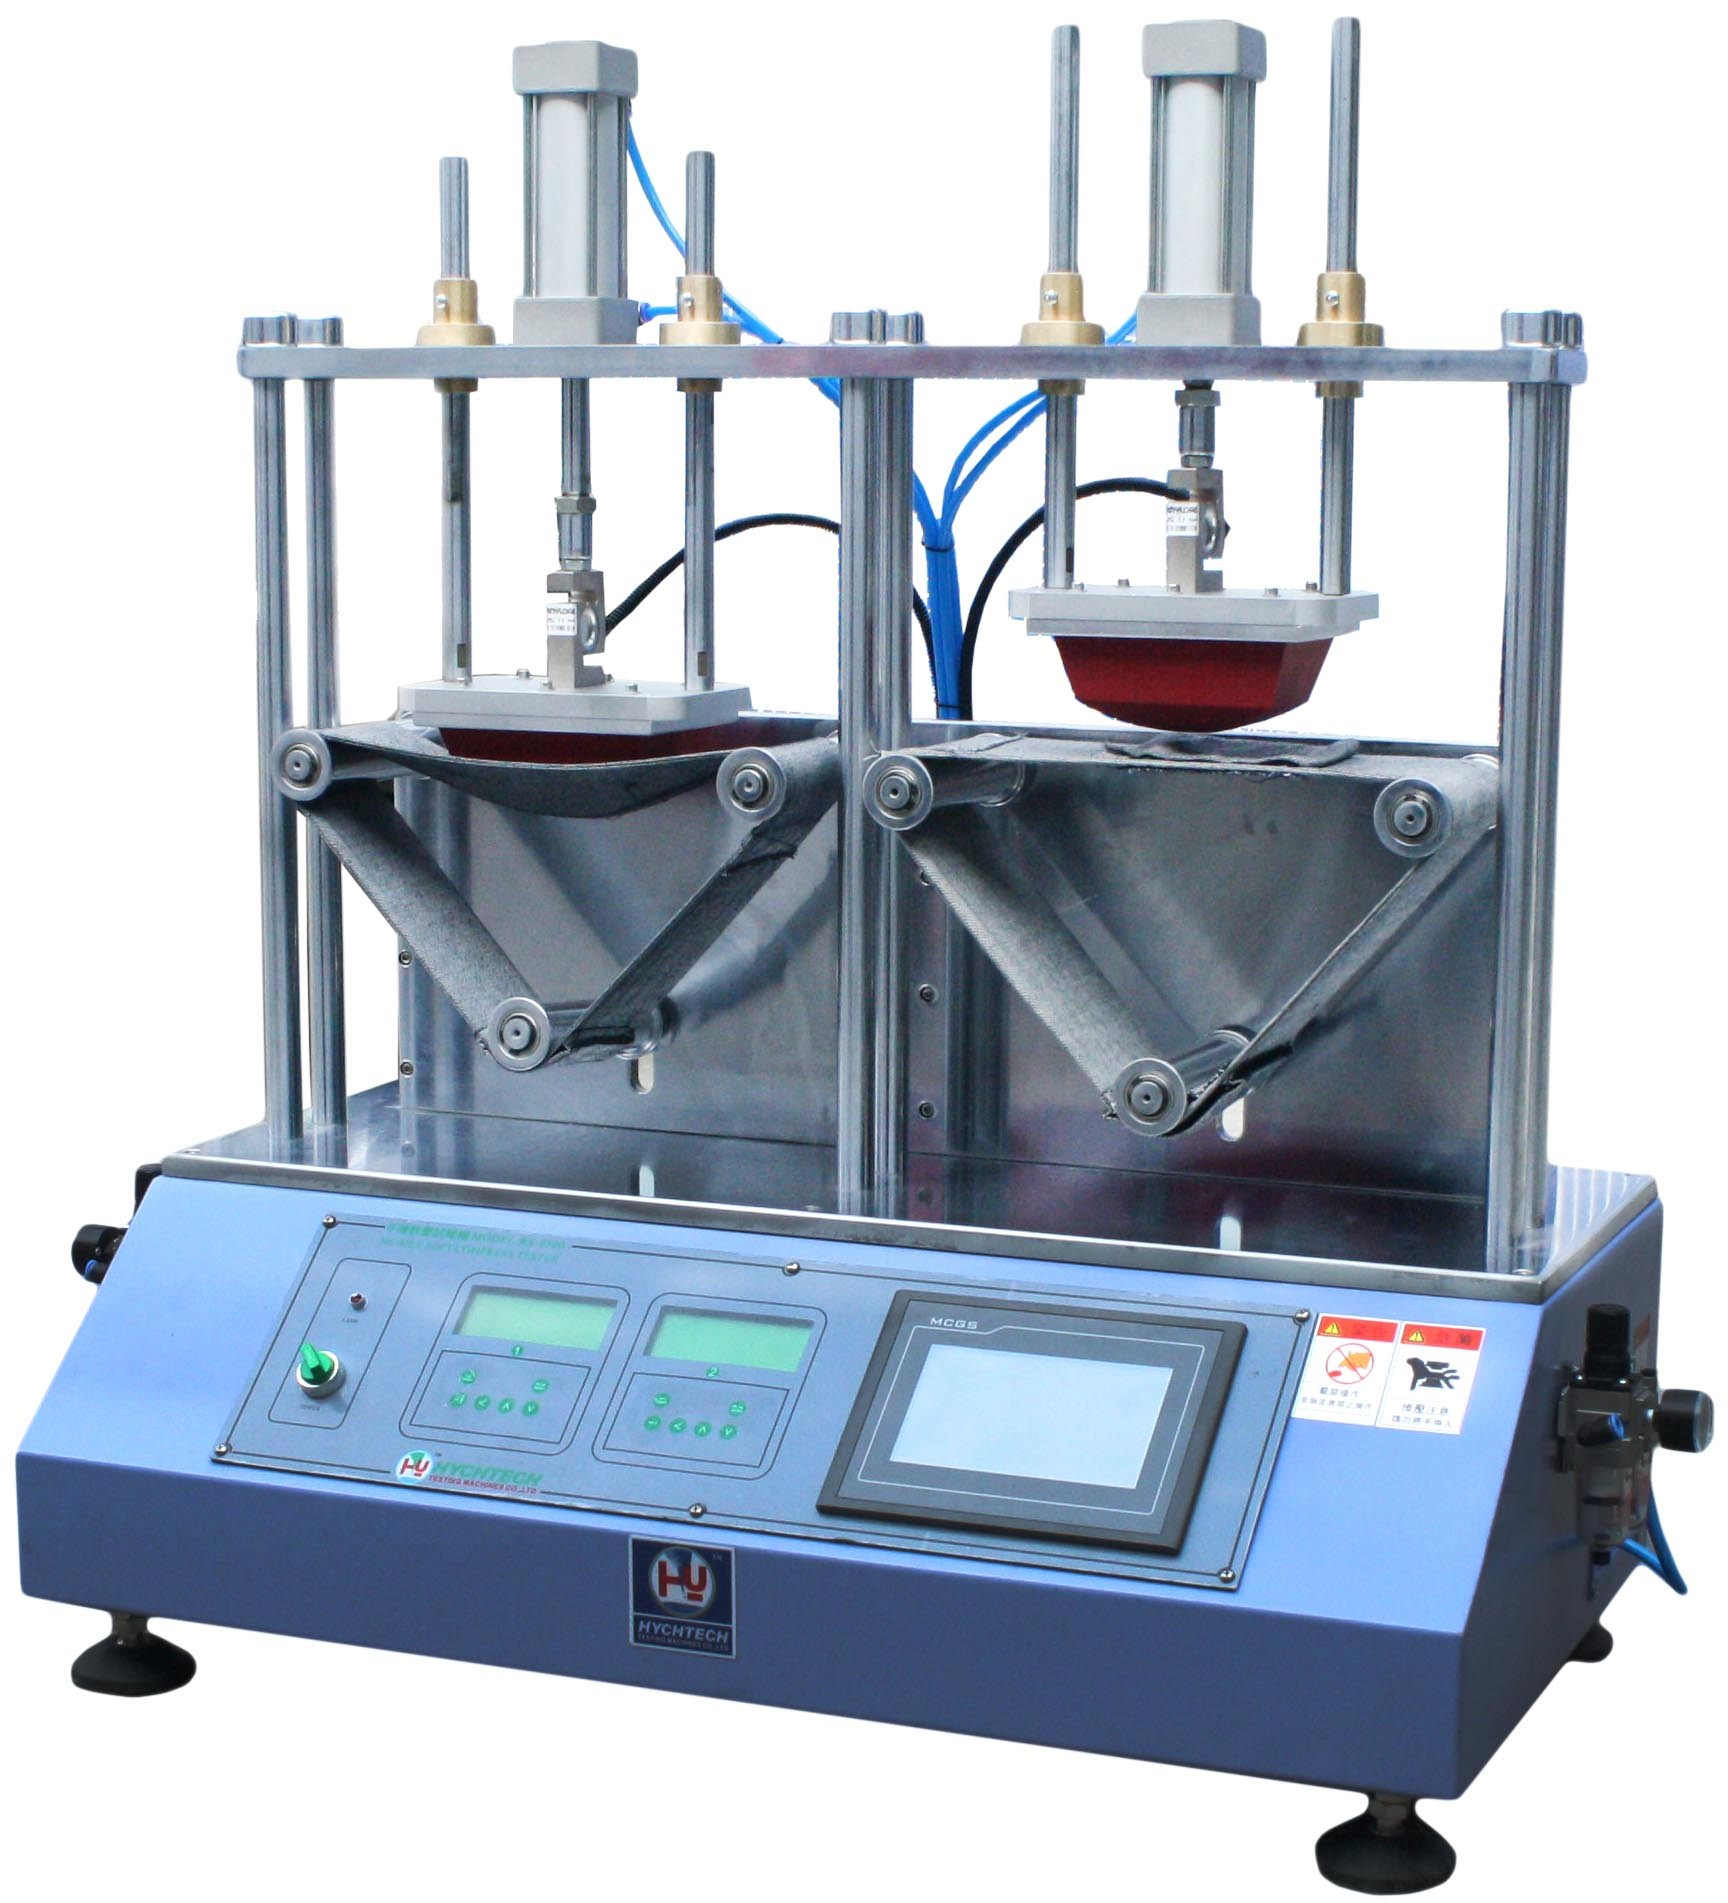 Soft Tensile Compressive Strength Testing Machine 2 Stations SMC Component